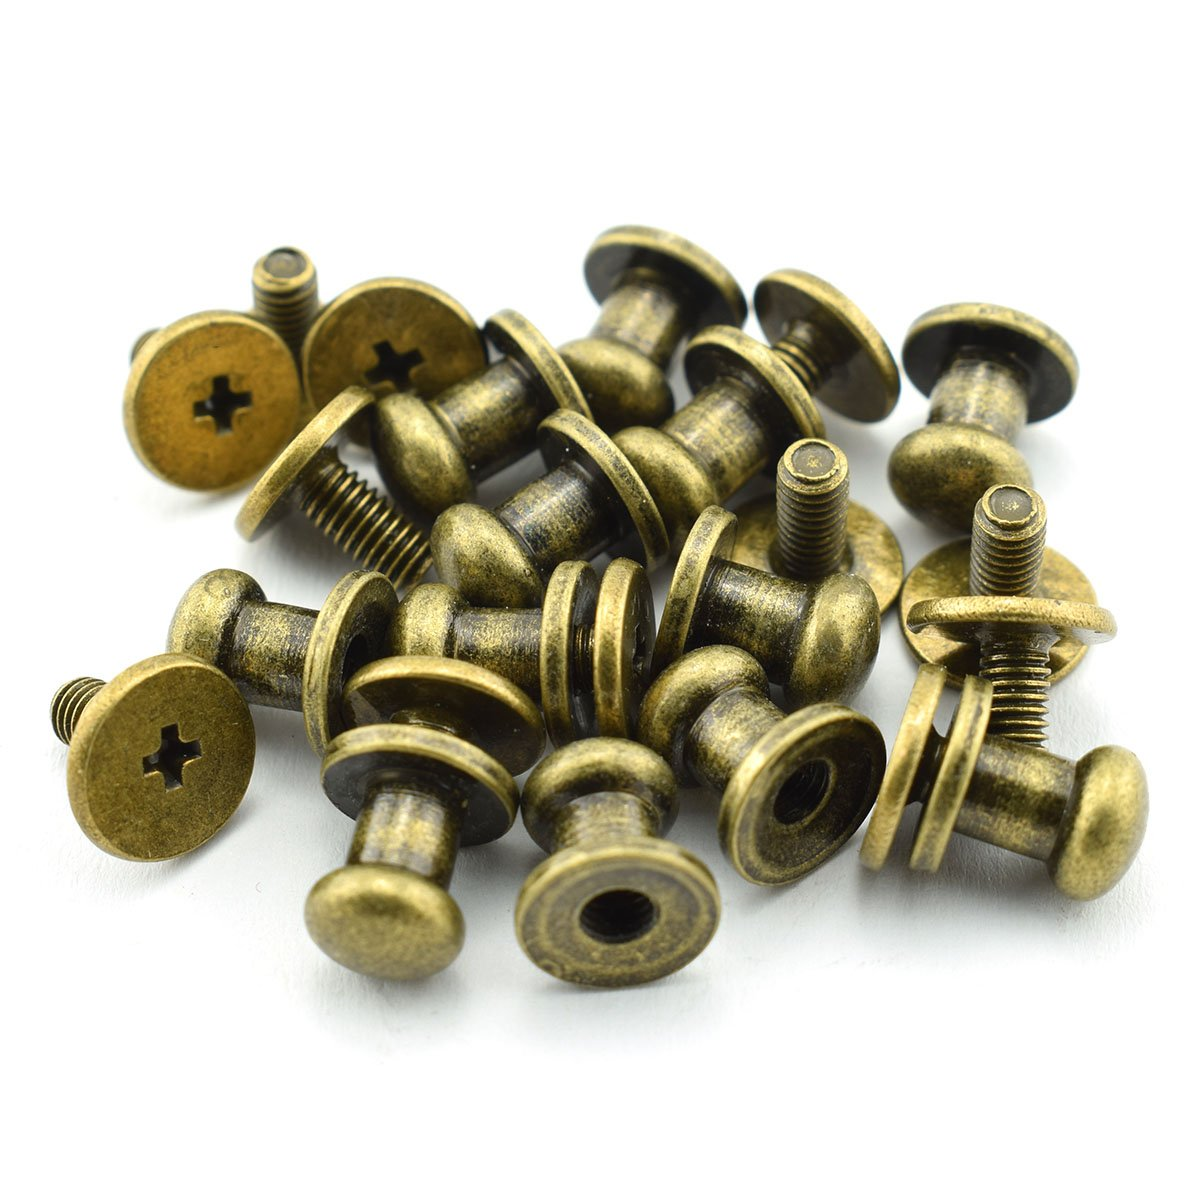 LQ Industrial 12 Pack Bronze Round Phillips Head Button Stud Screws 6x8x8mm Chicago Screws Nail Rivet For DIY Leather Craft